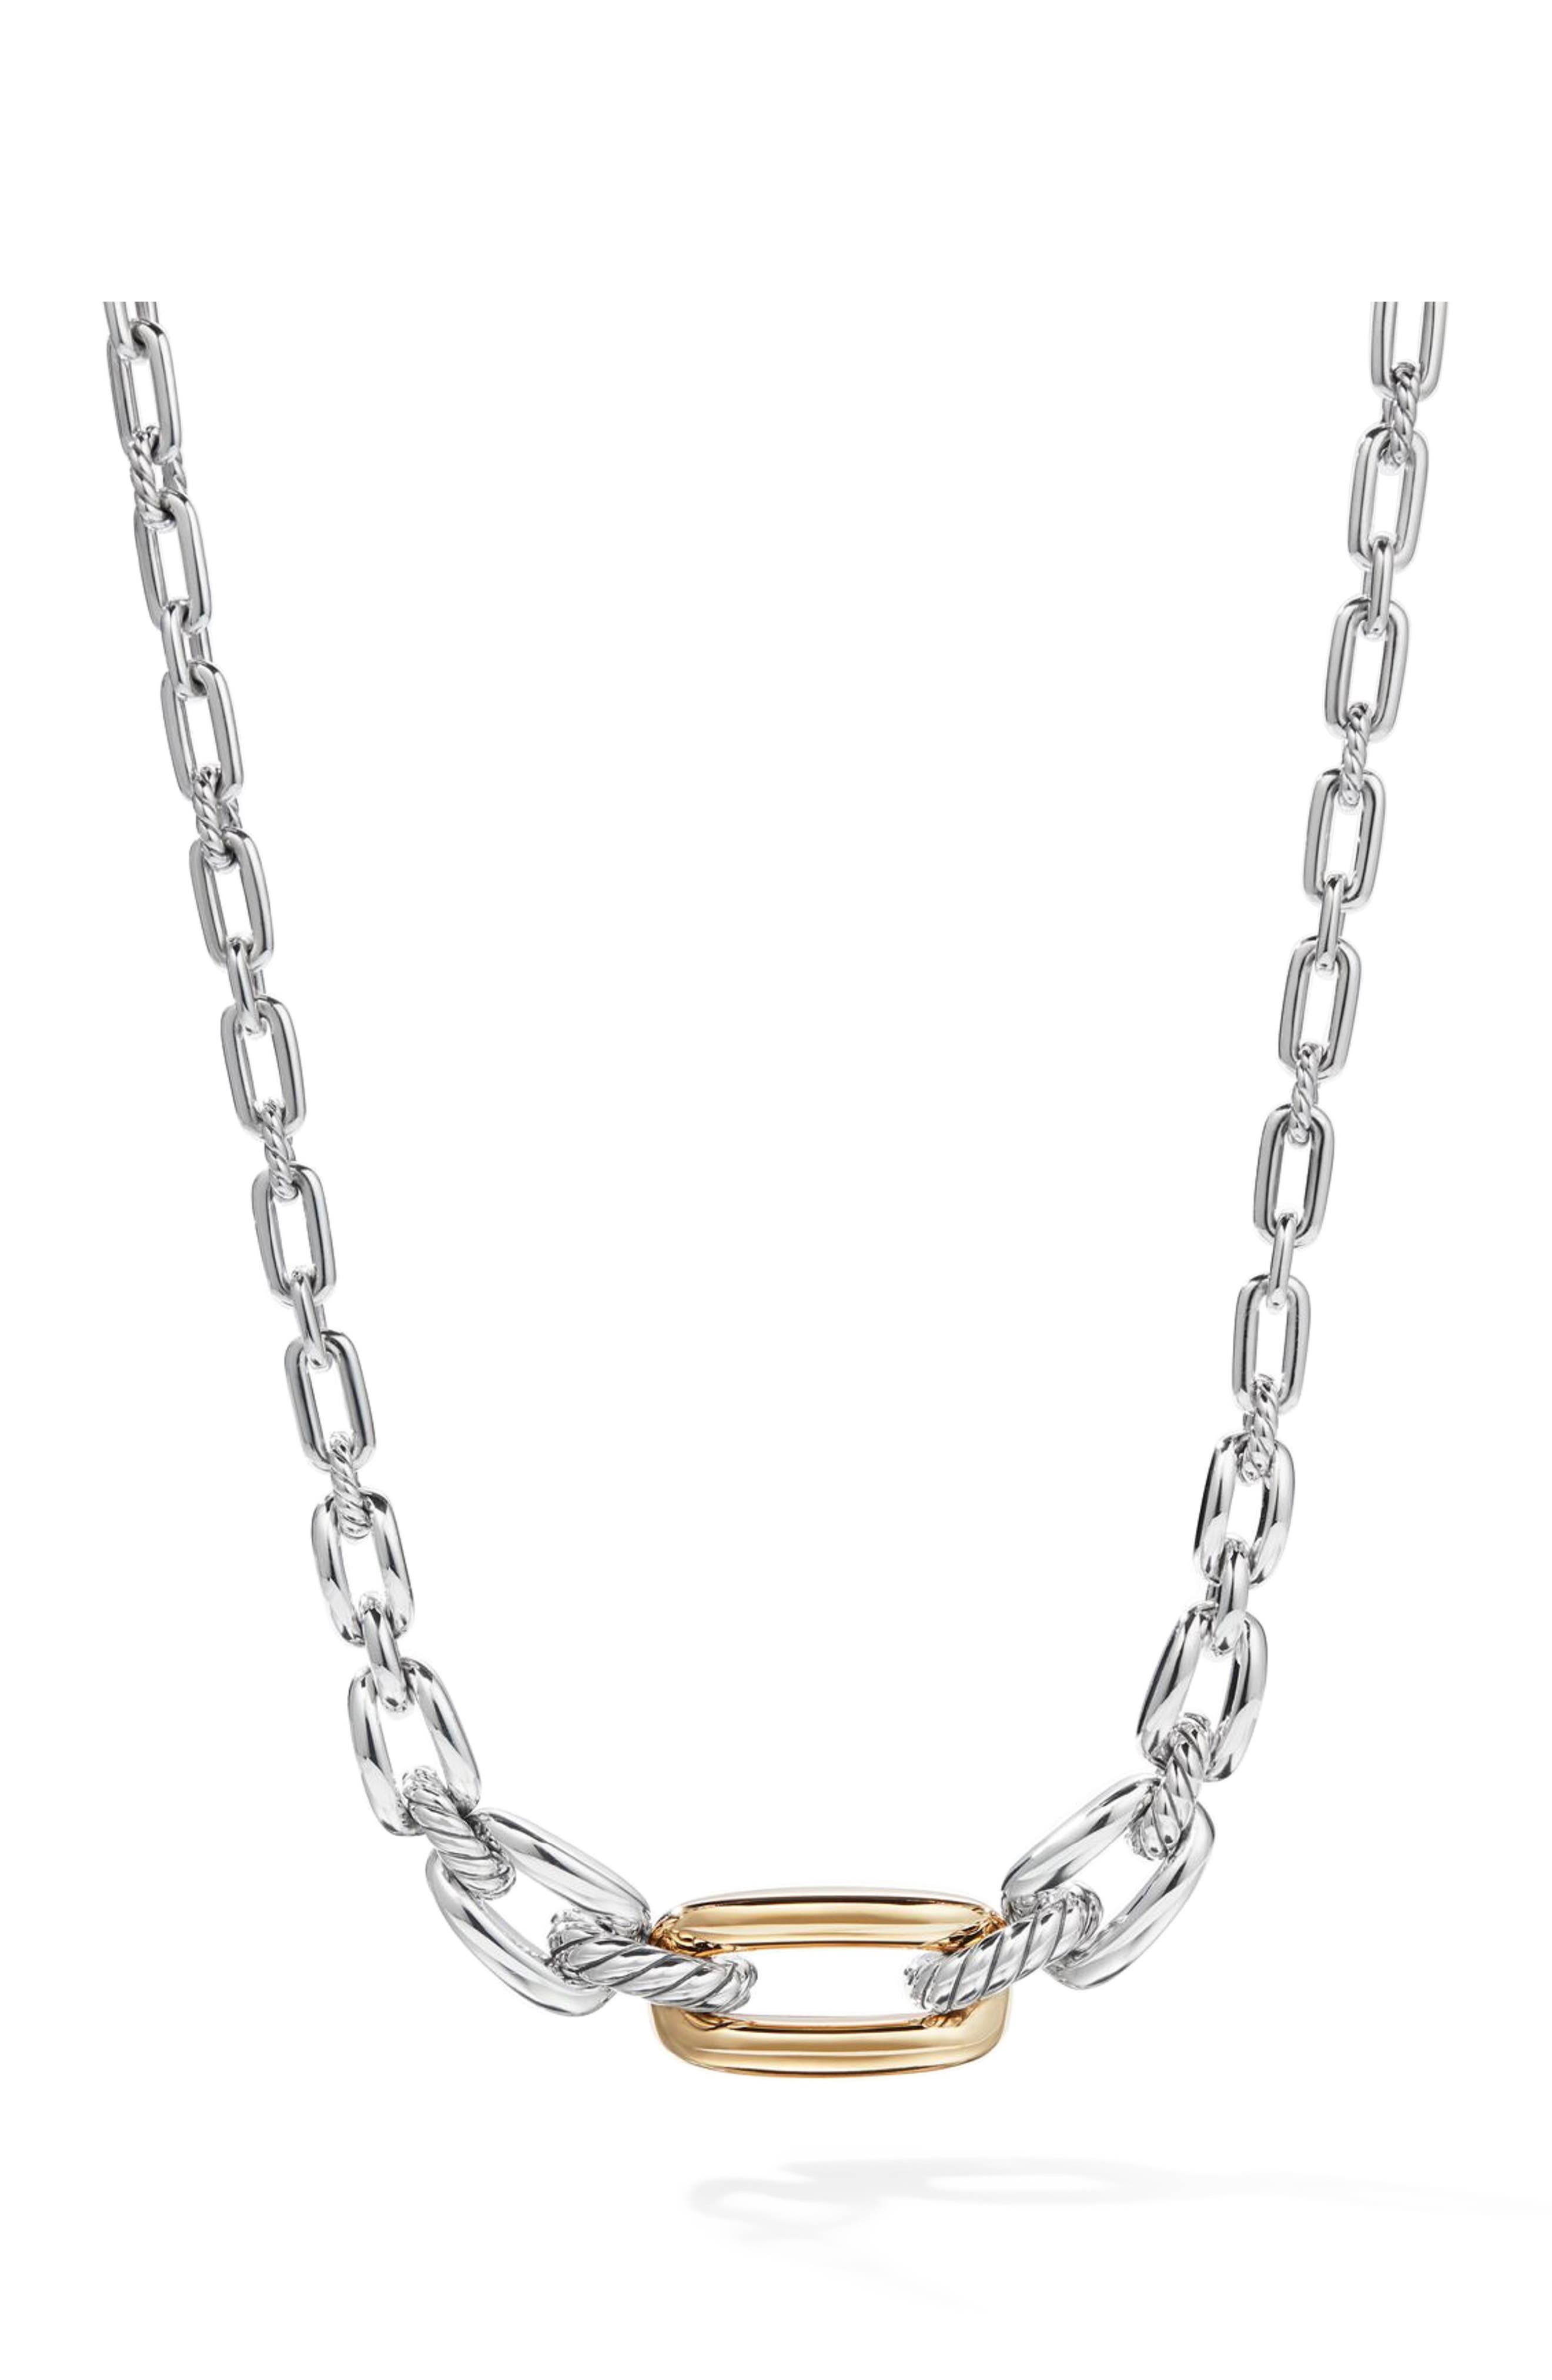 DAVID YURMAN,                             Wellesley Link Short Necklace with 18k Gold,                             Main thumbnail 1, color,                             18K YELLOW GOLD/ SILVER